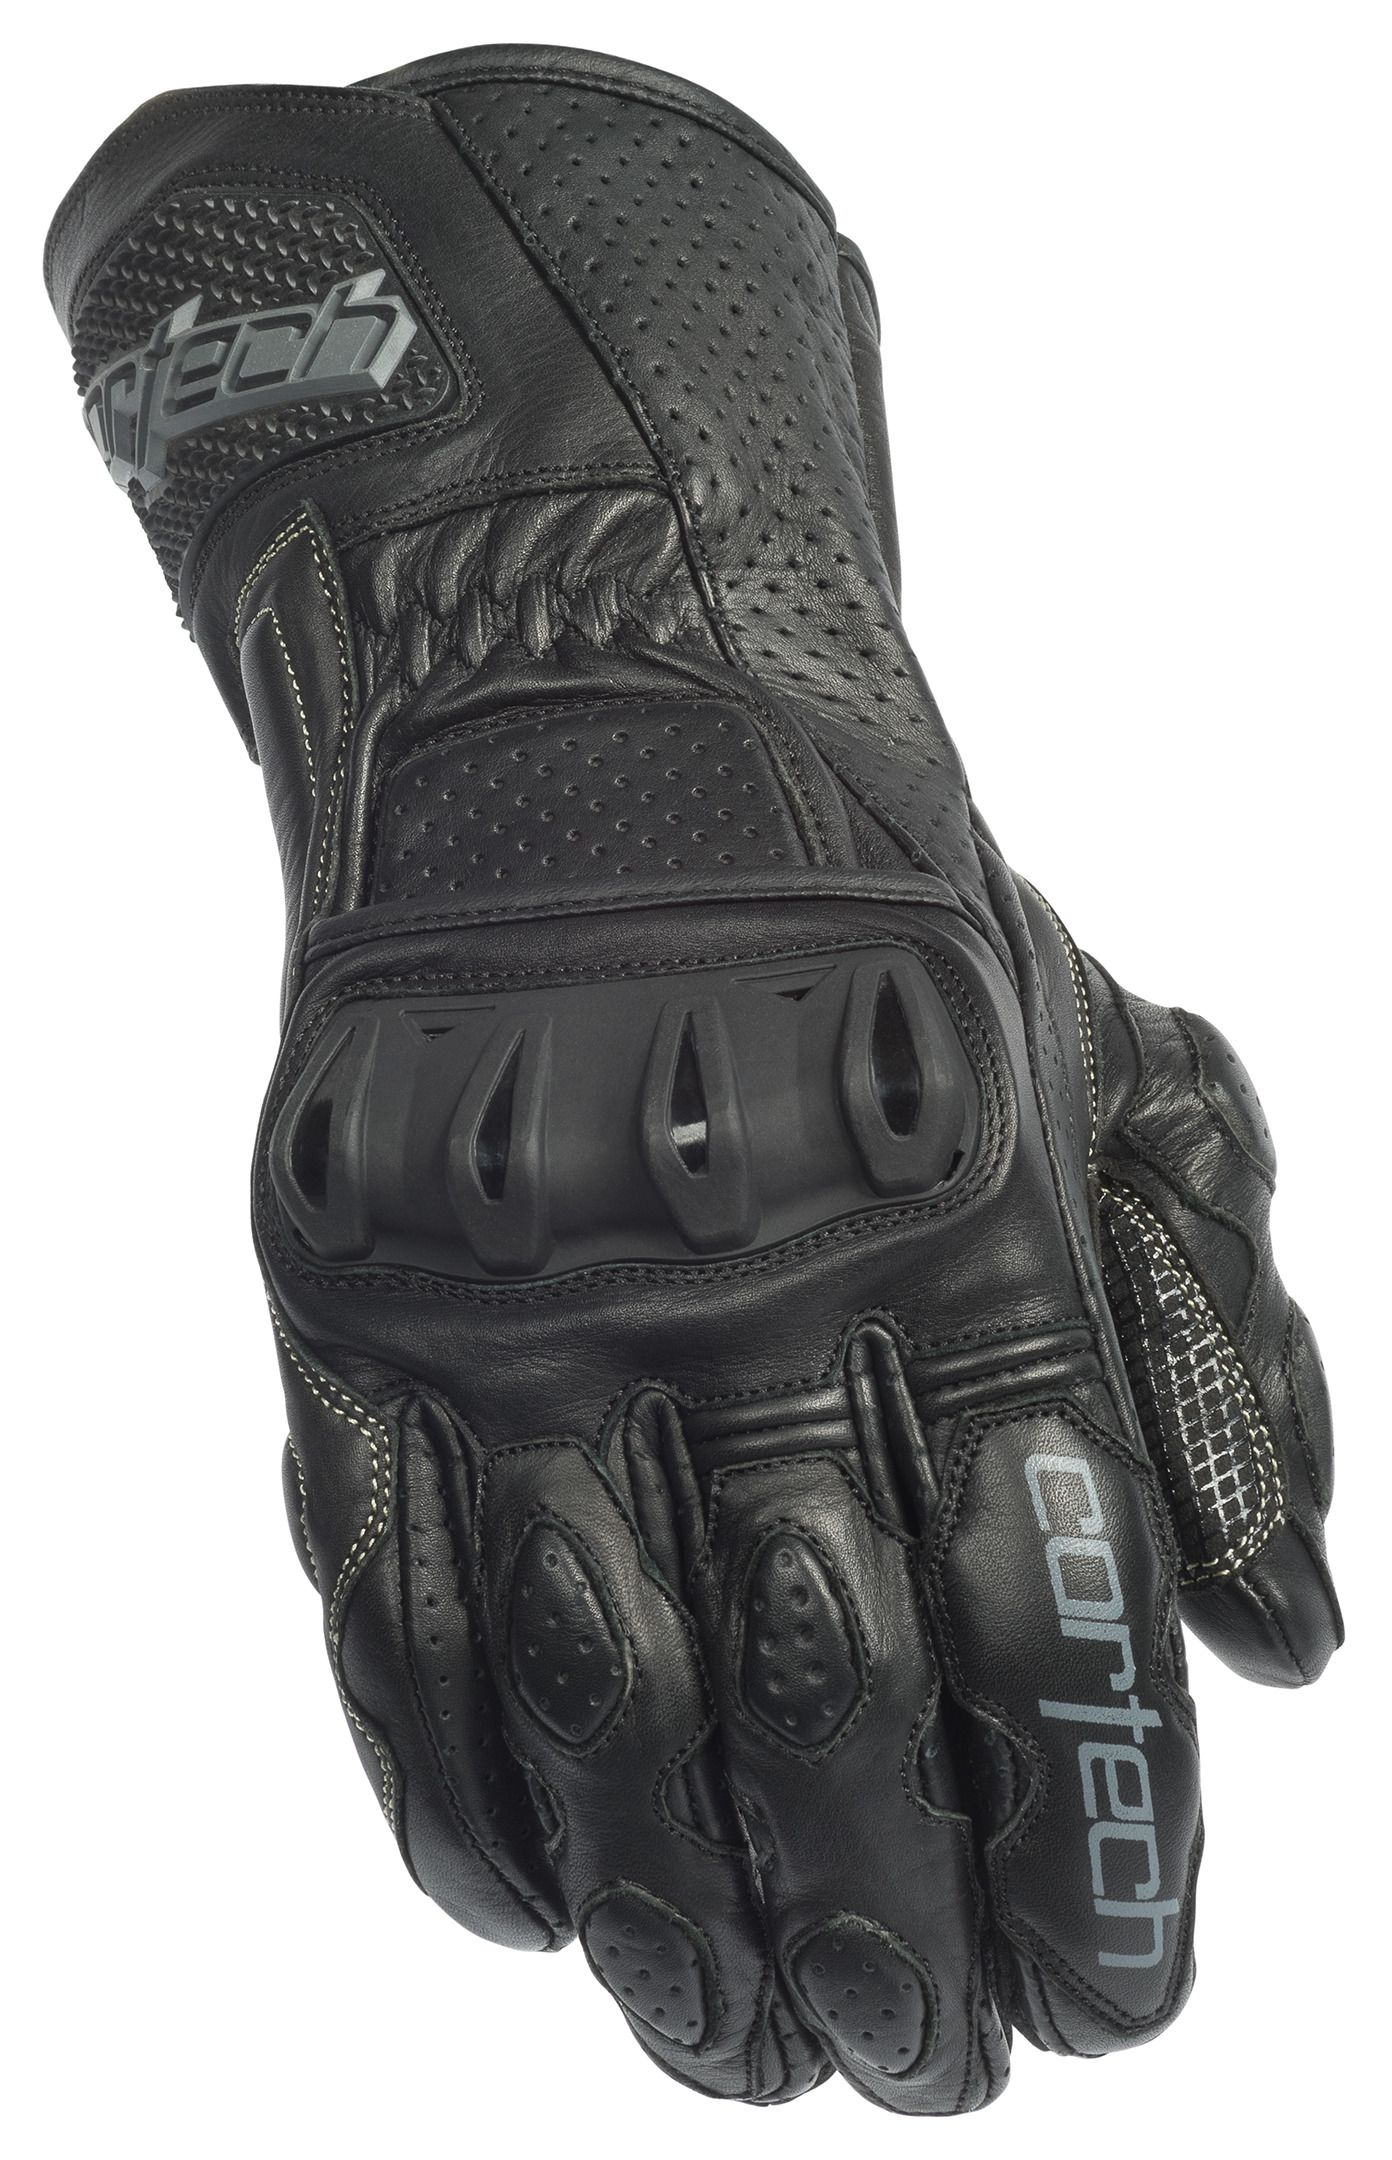 Leather gauntlet driving gloves - Leather Gauntlet Driving Gloves